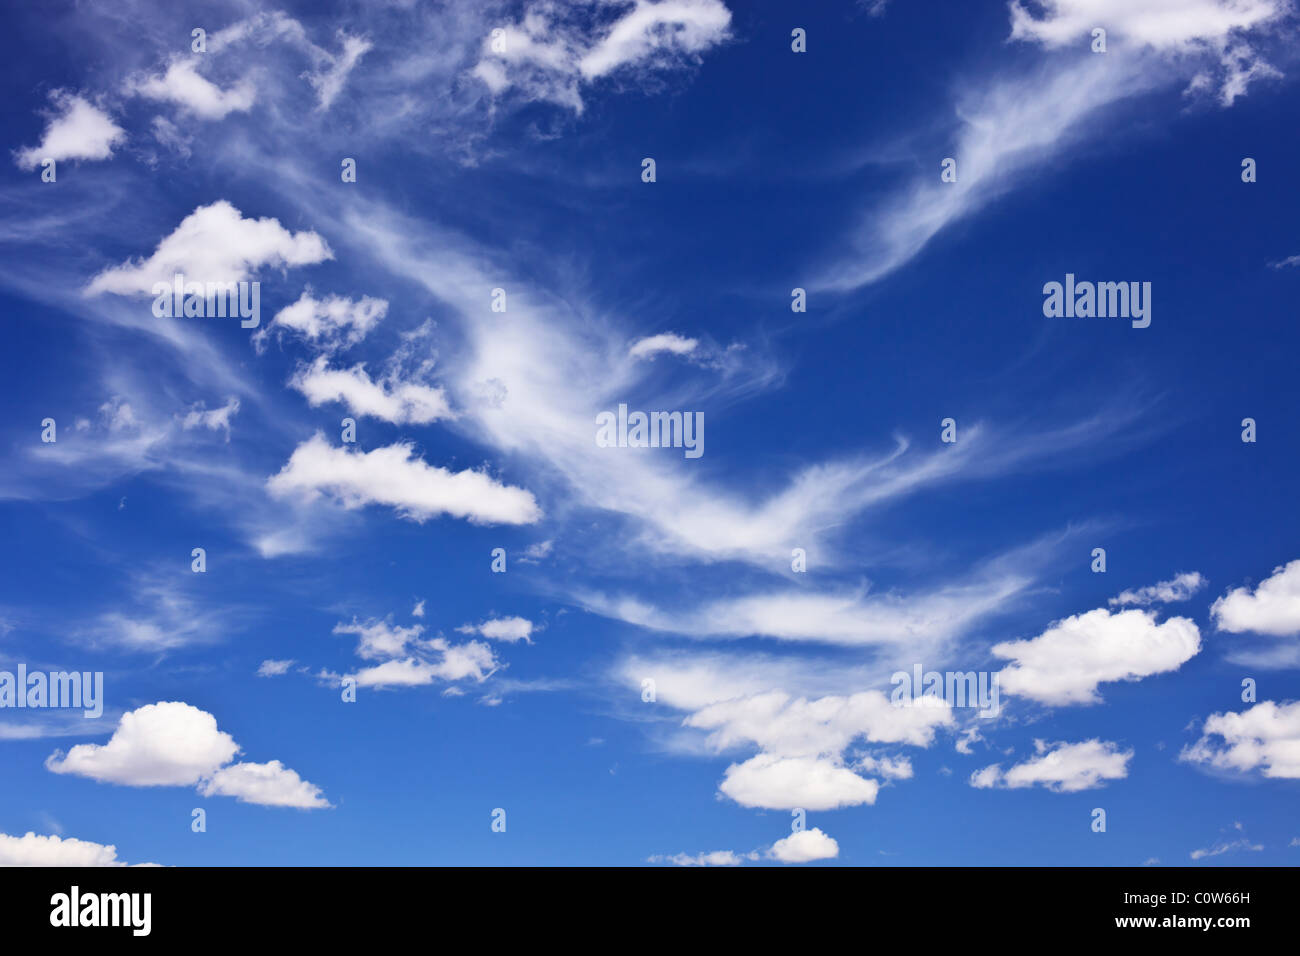 Some scattered and wispy clouds in blue sky over rural western Oklahoma. - Stock Image